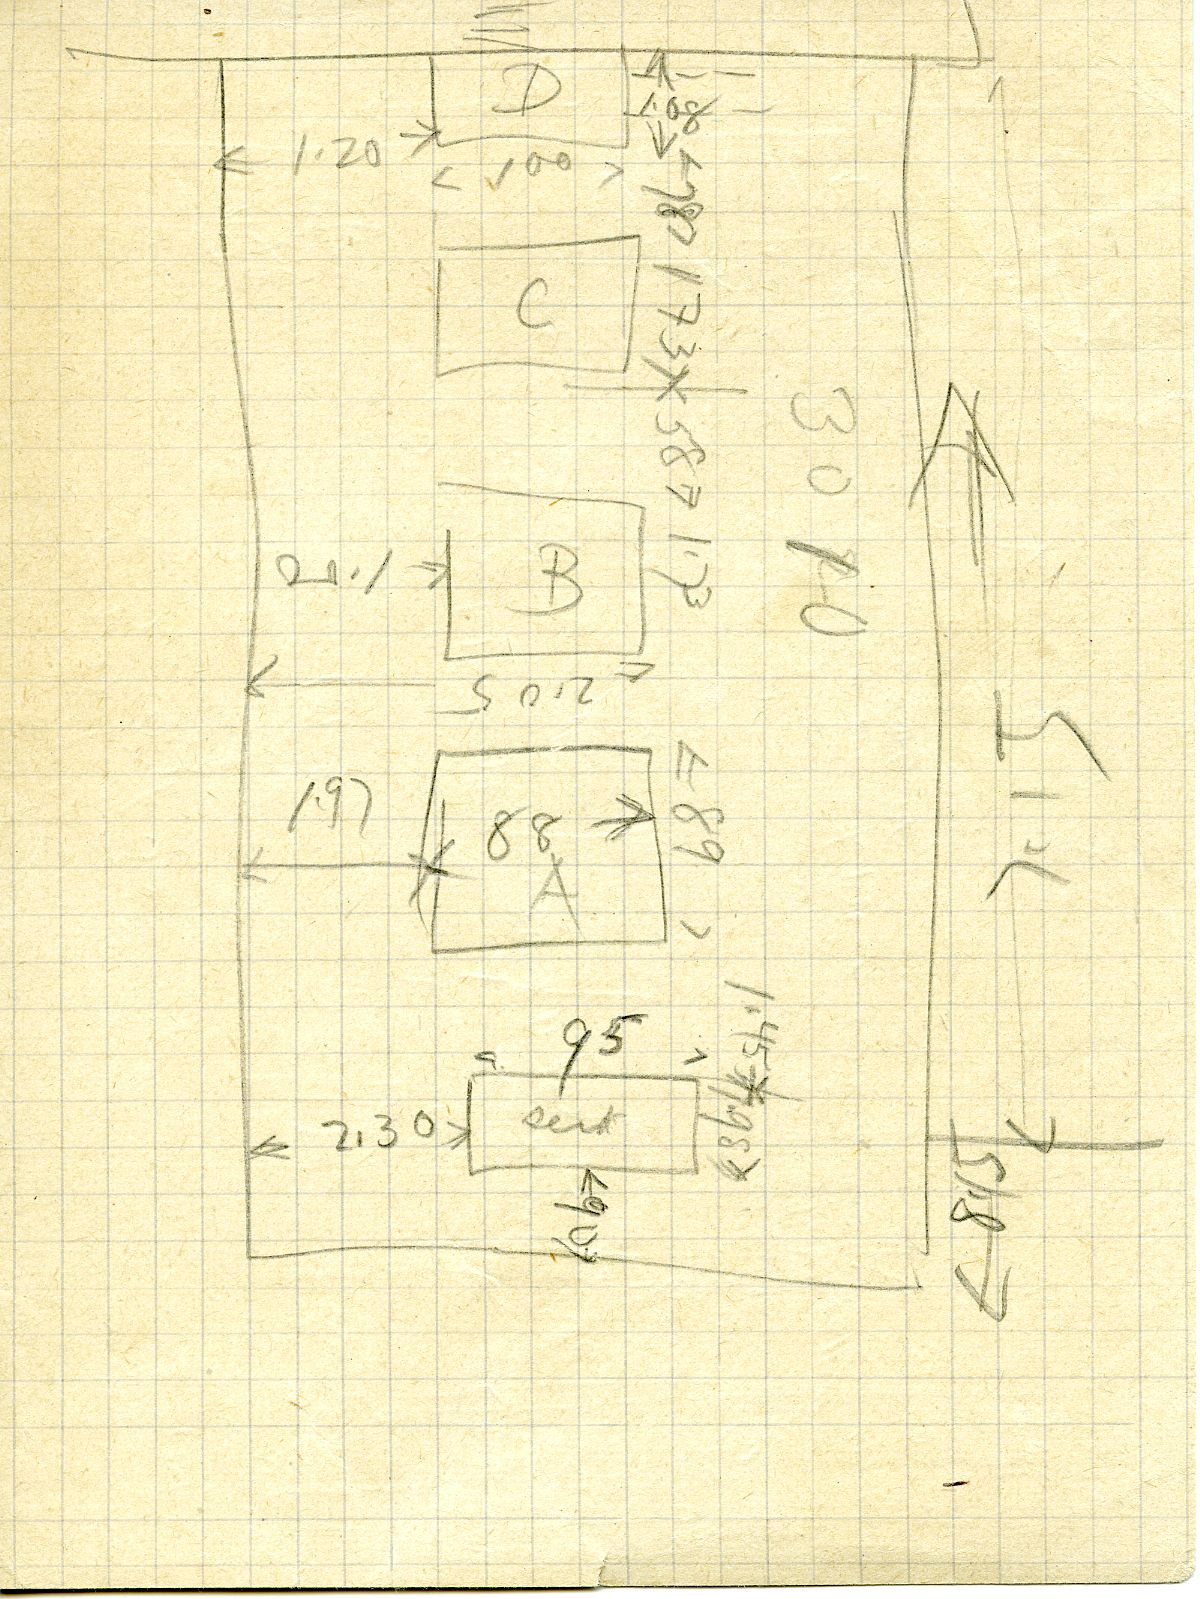 Maps and plans: G 3010, Sketch plan